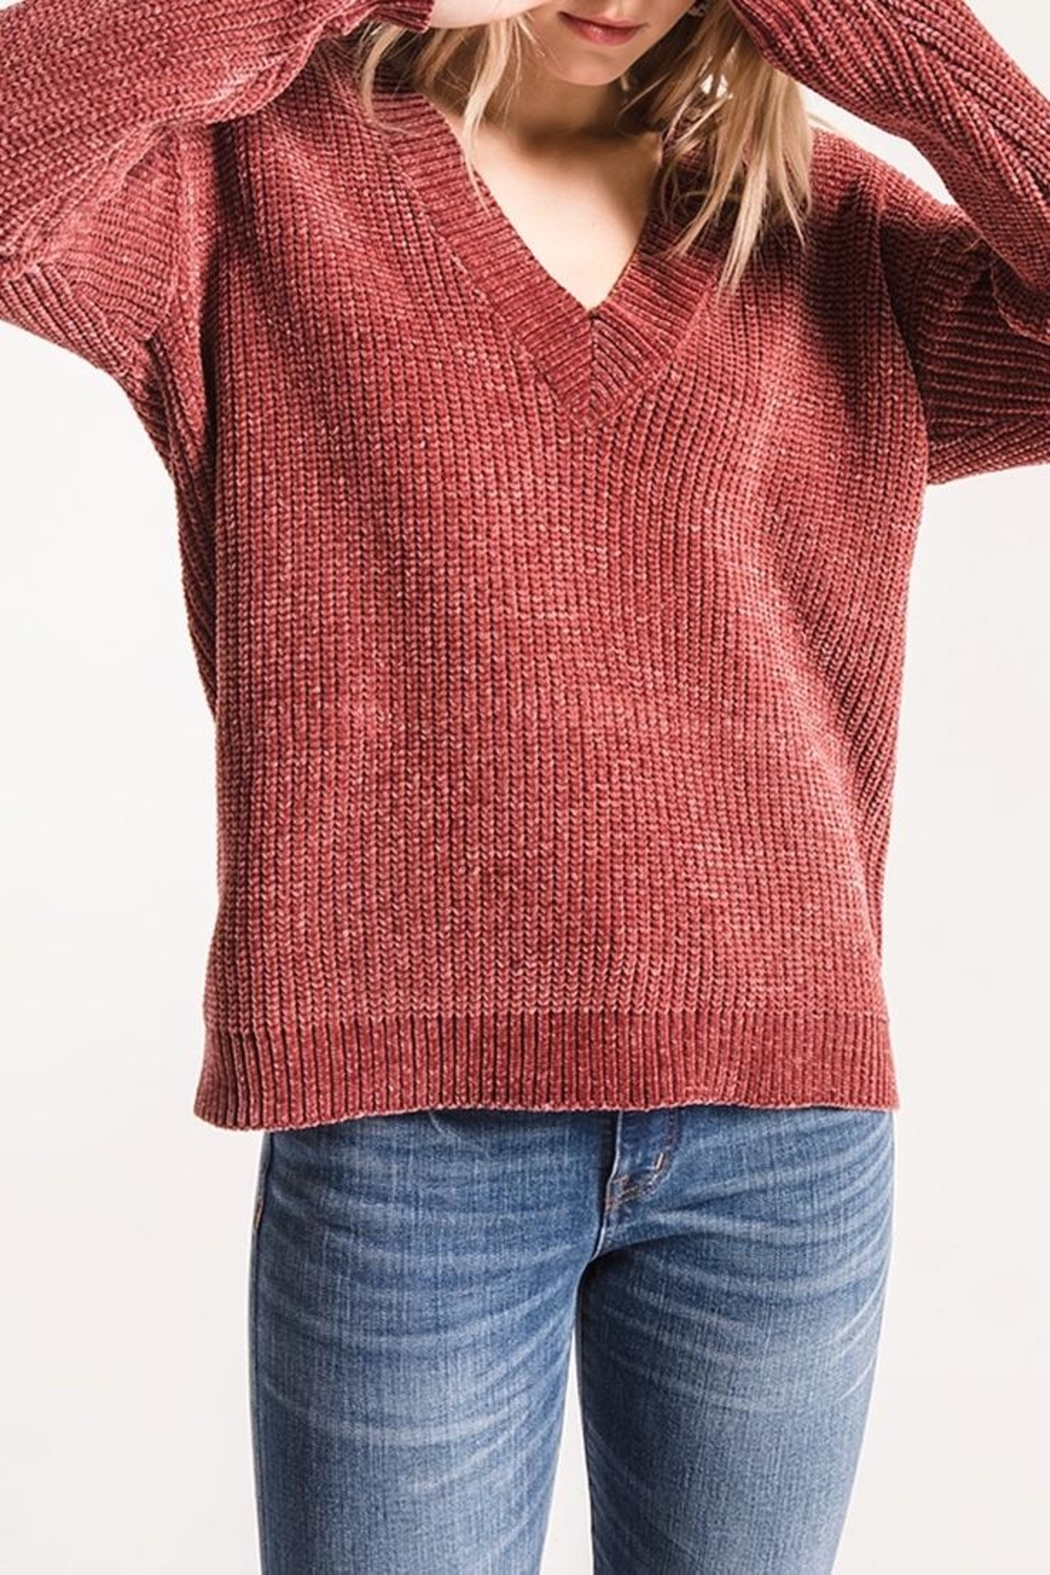 57d1c596bd9 rag poet Clara Chenille Sweater from Minnesota by Apricot Lane ...